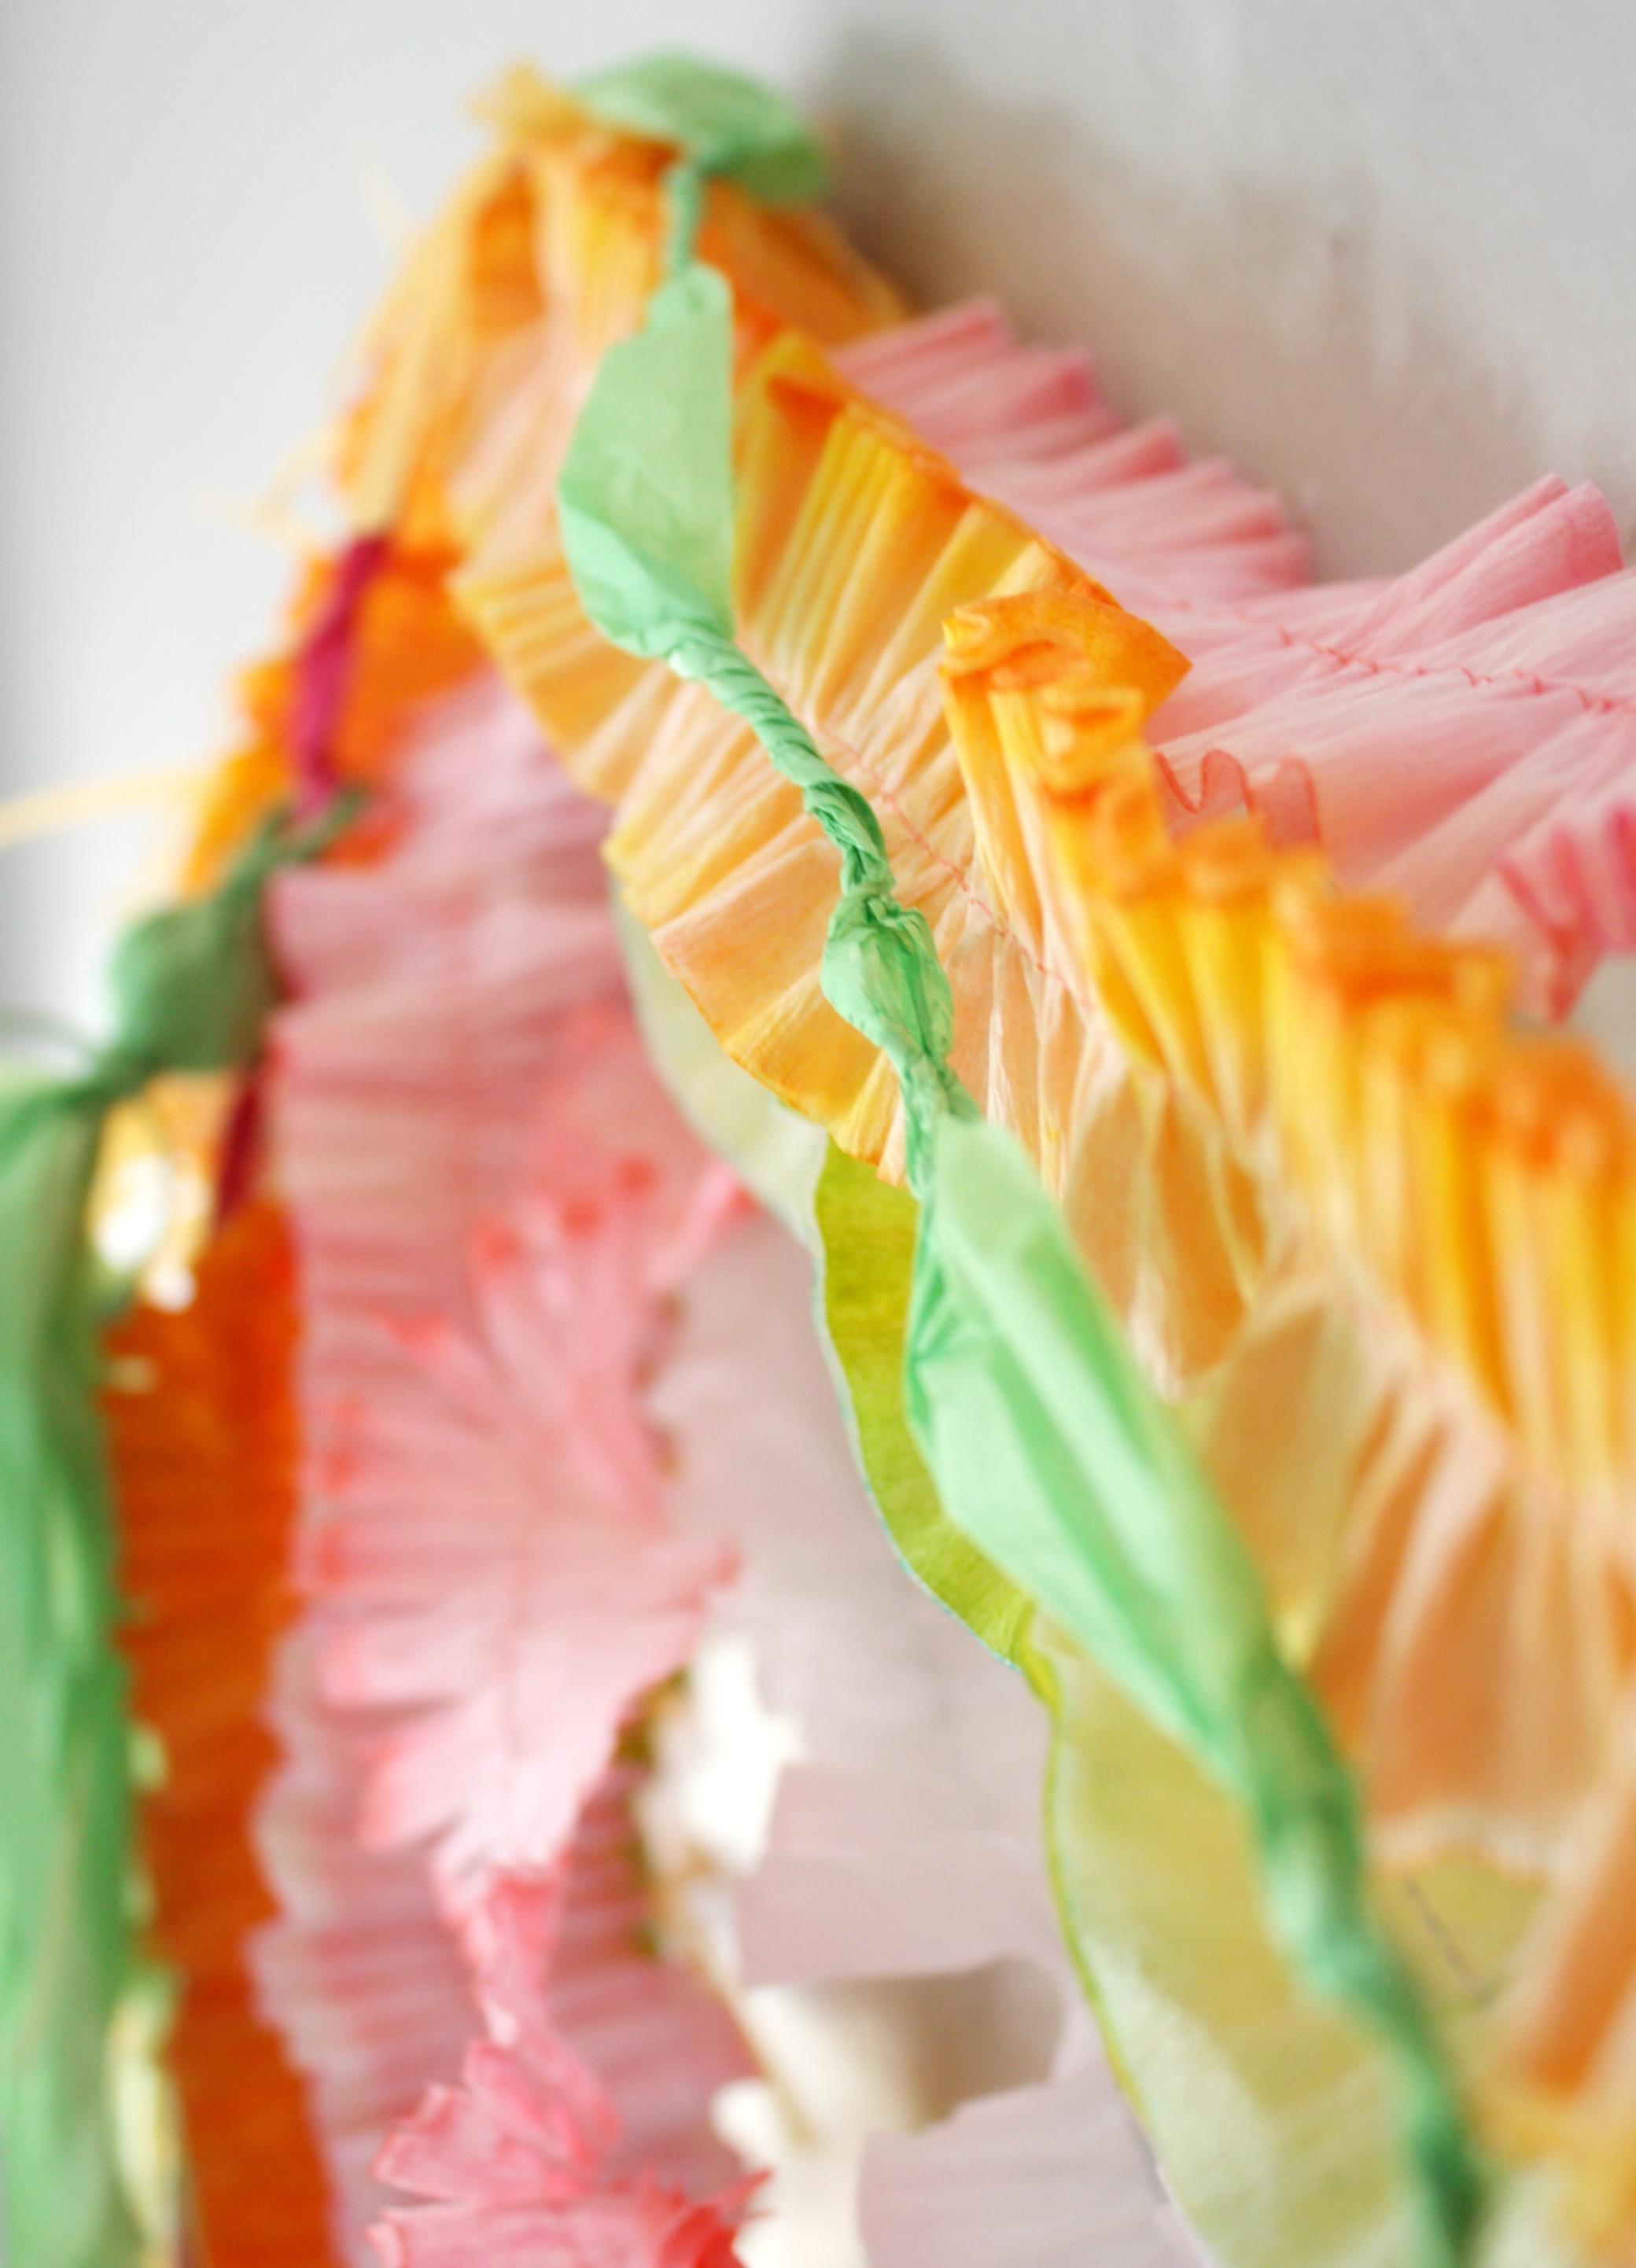 Crepe and tissue paper decoration detail